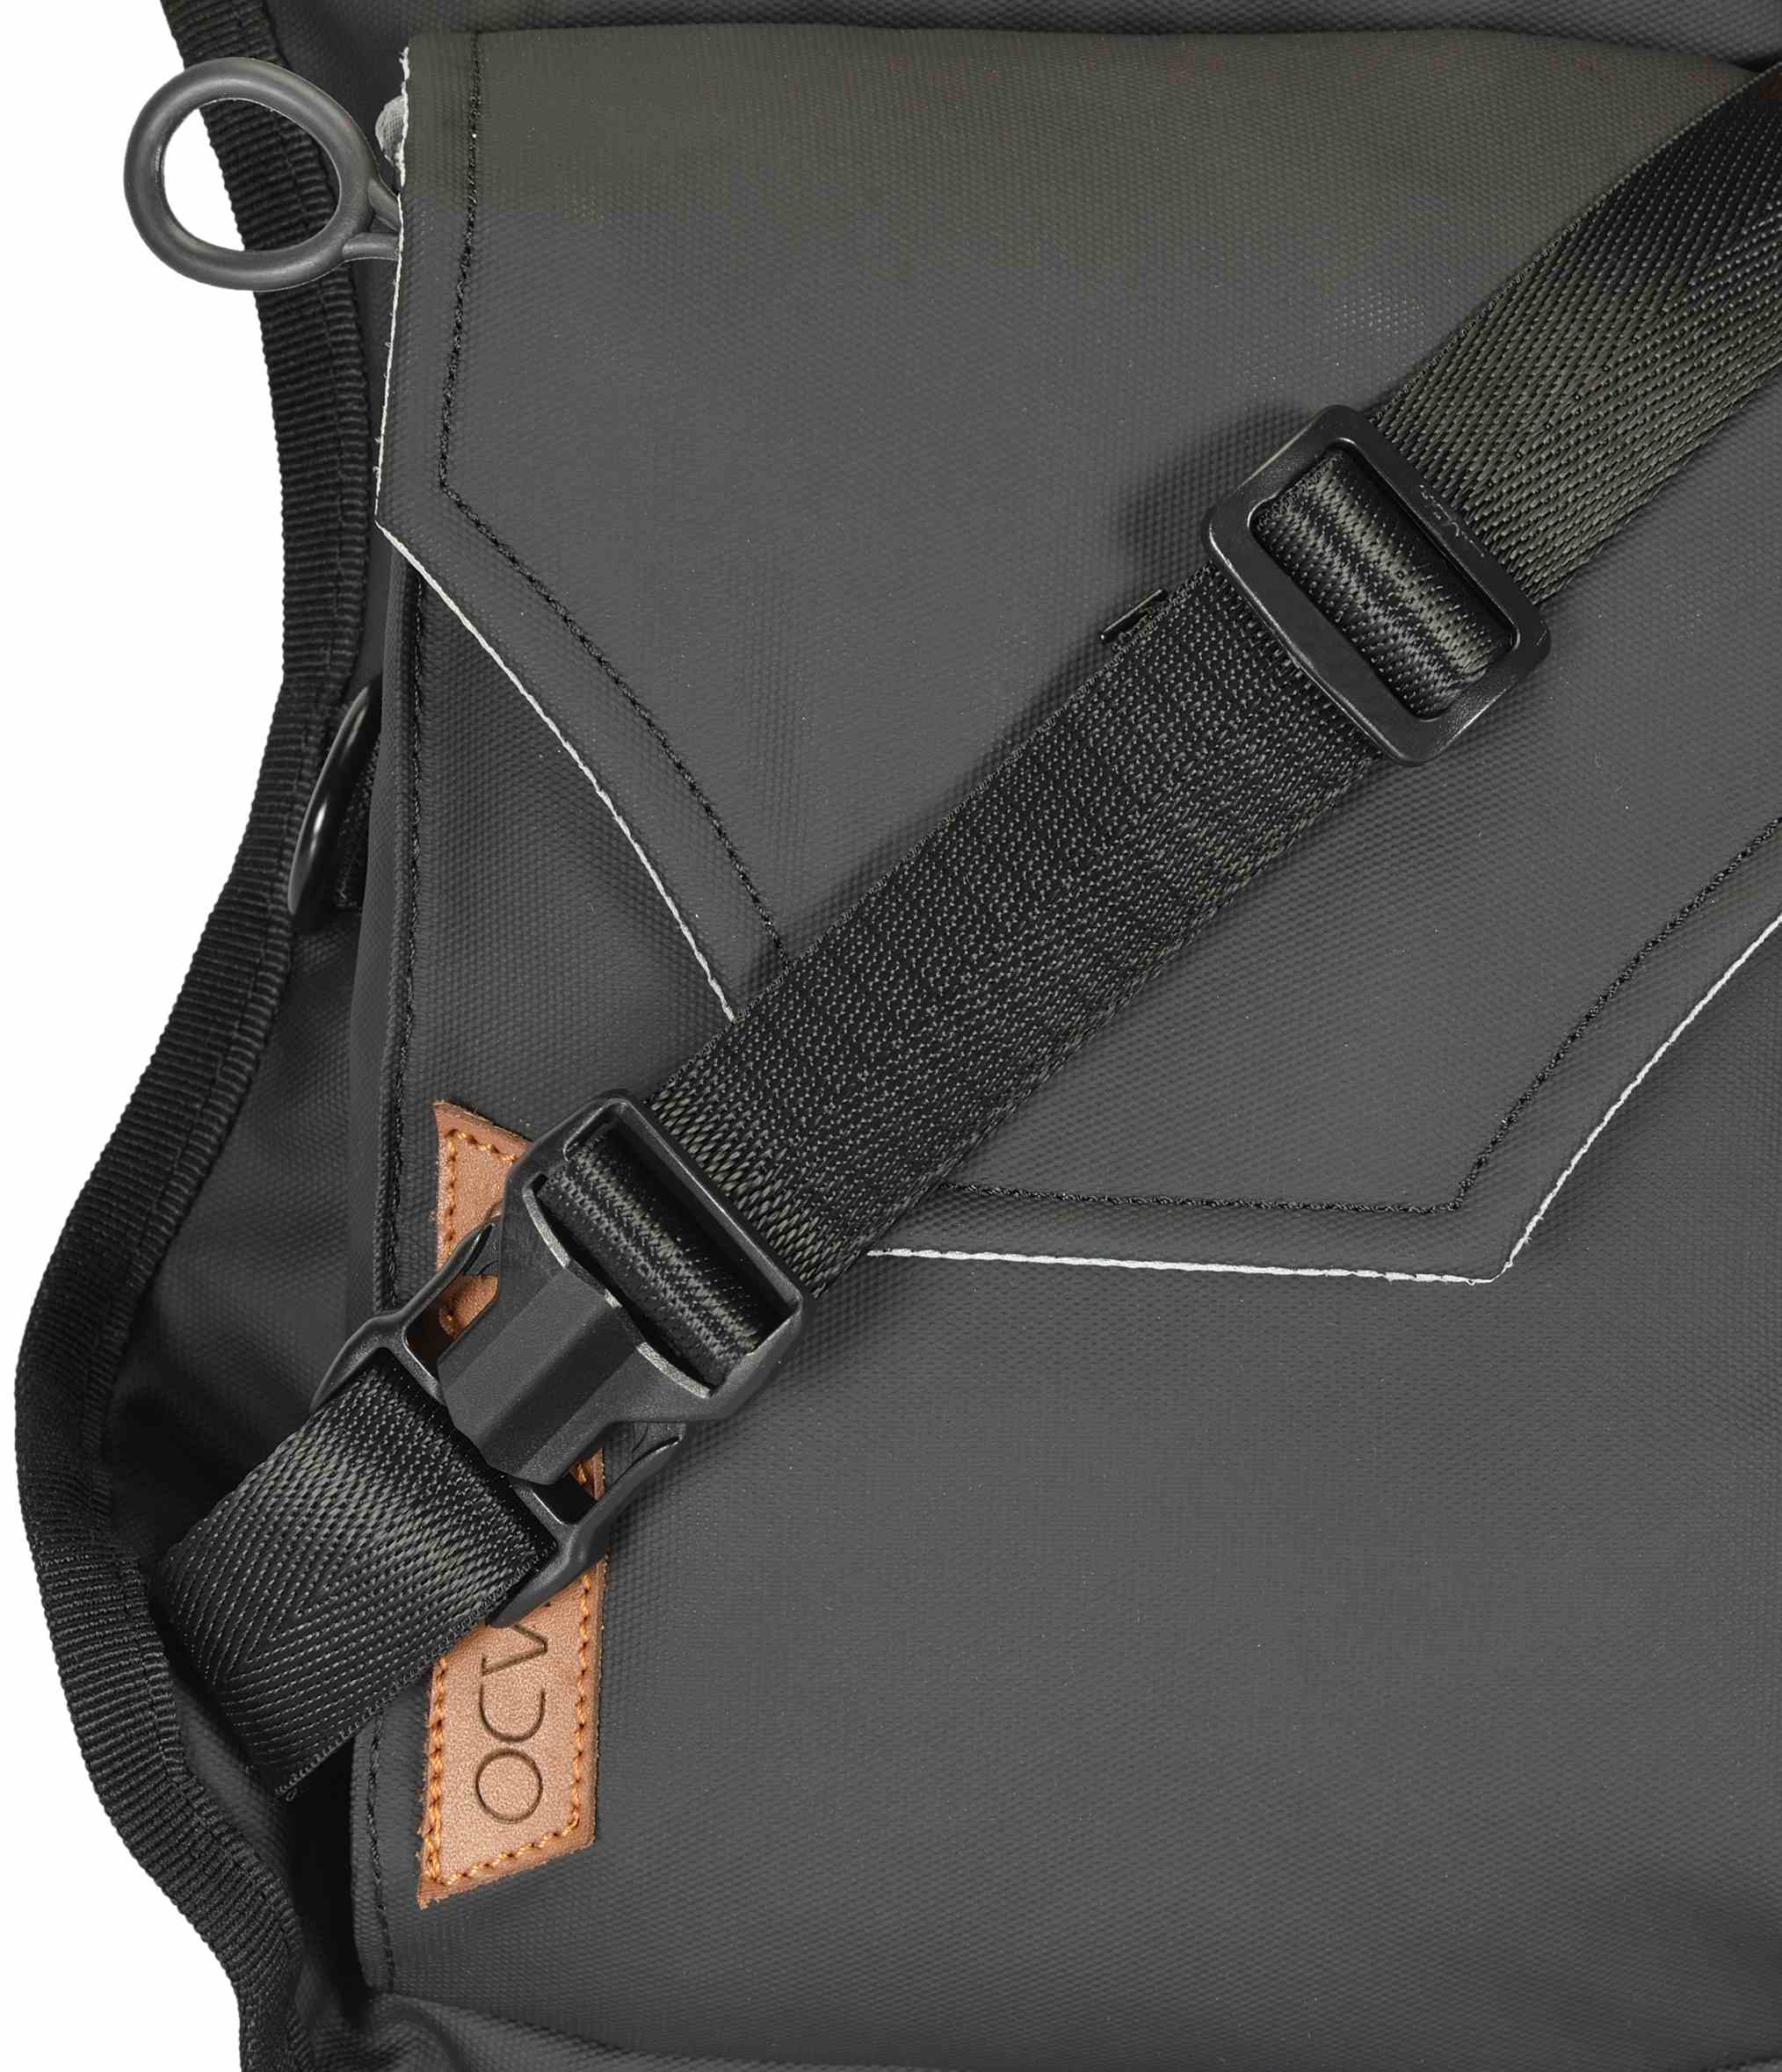 VECTOR | Leg Pouch + Sling Bag from Carbonado